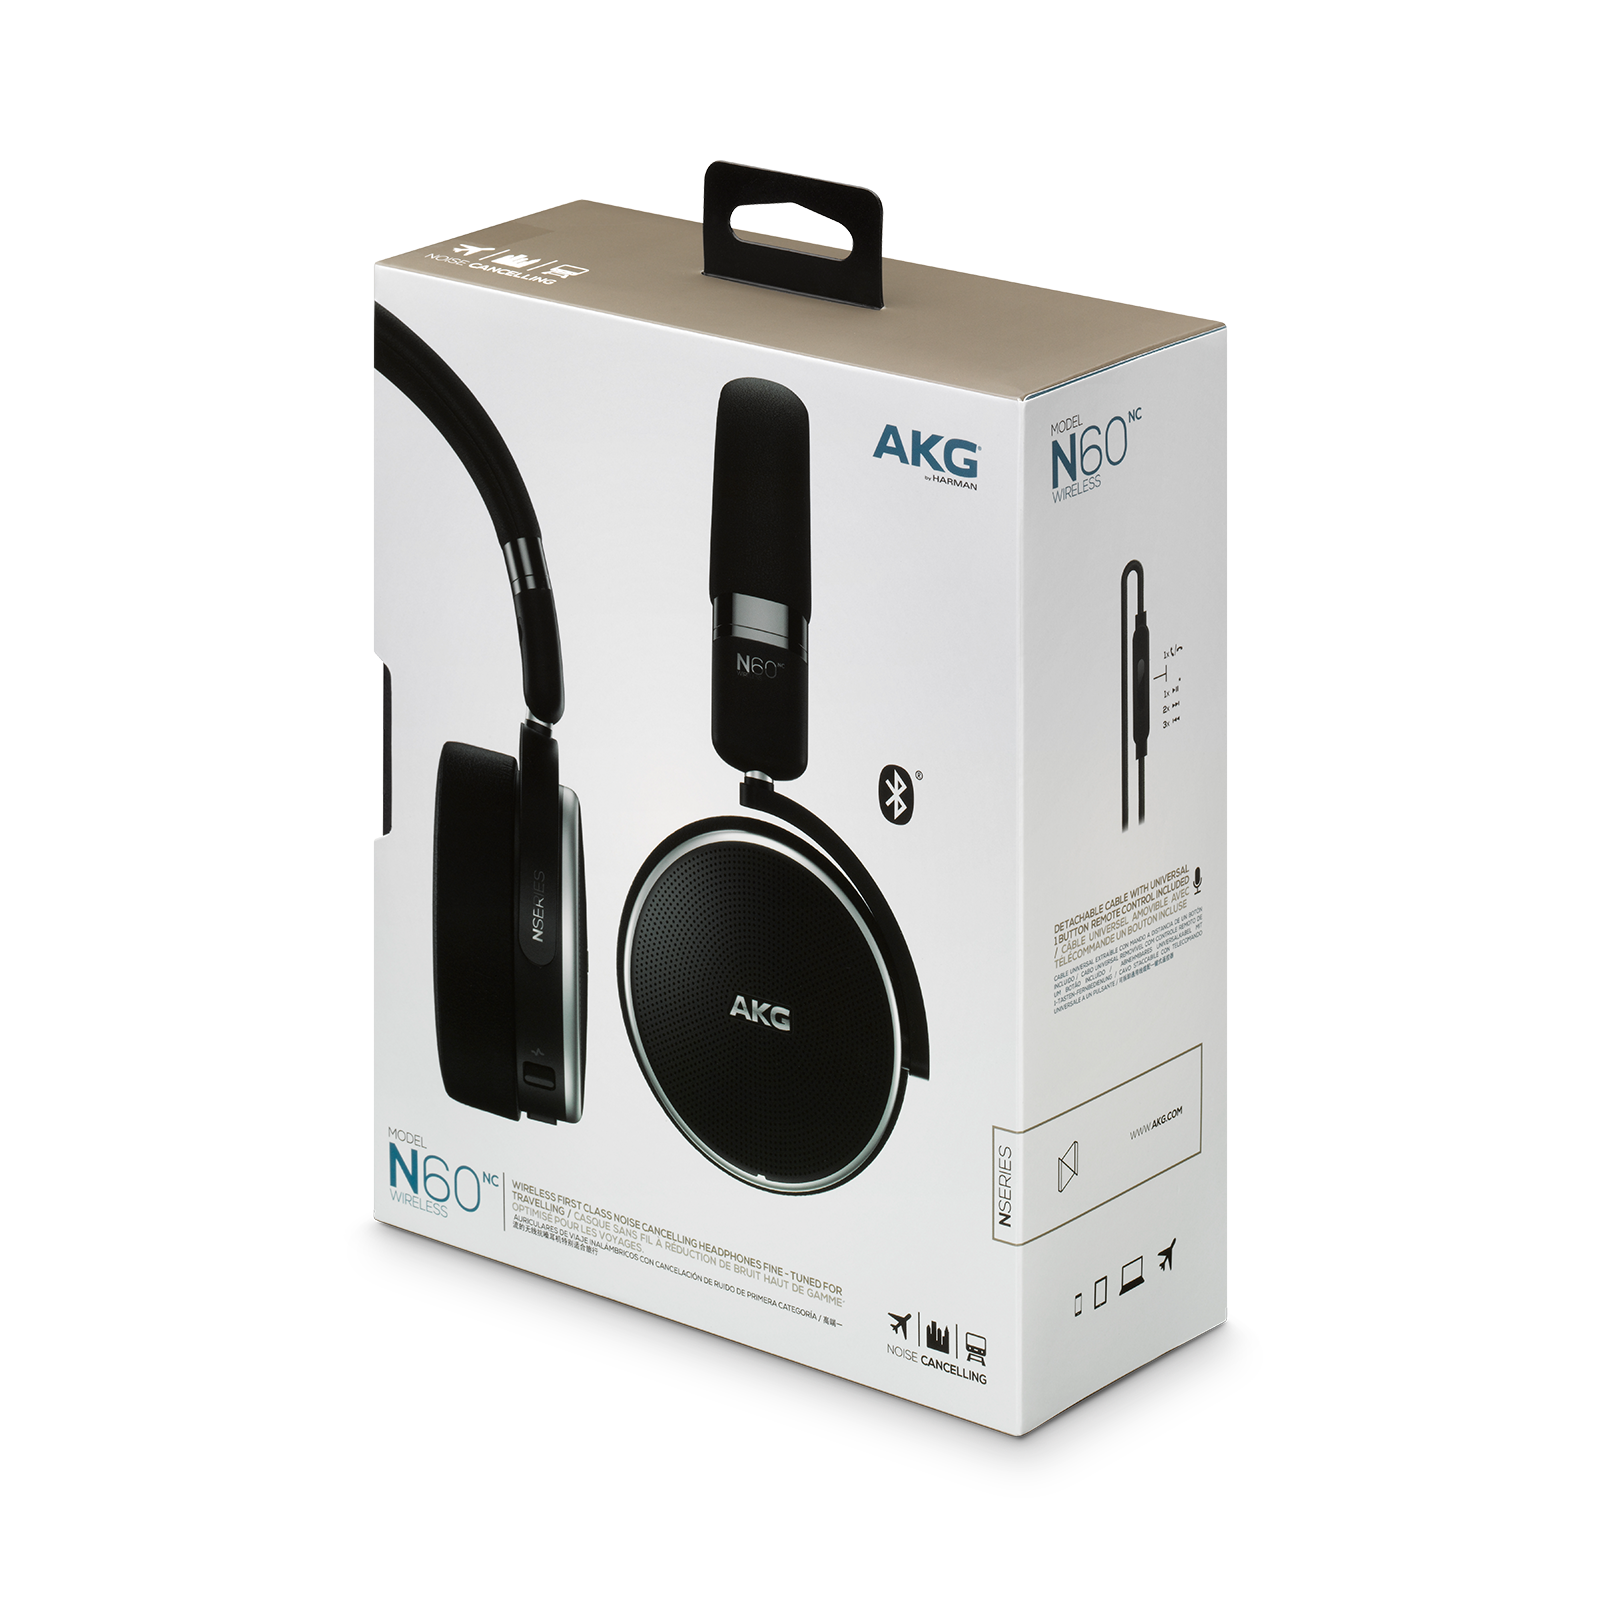 N60NC Wireless | On-ear wireless headphones with active noise